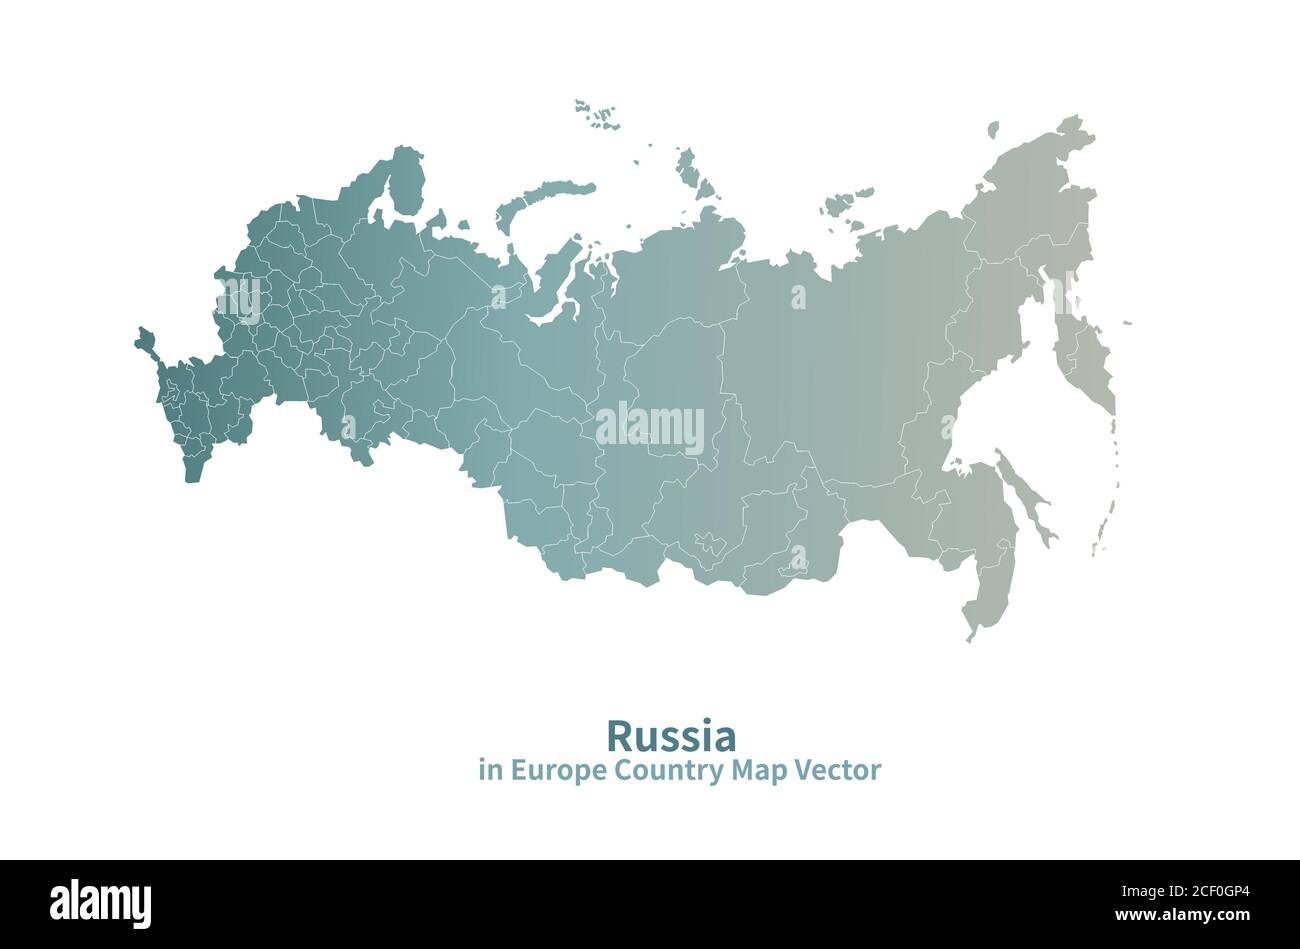 Picture of: Russia Vector Map European Country Map Green Series Stock Vector Image Art Alamy